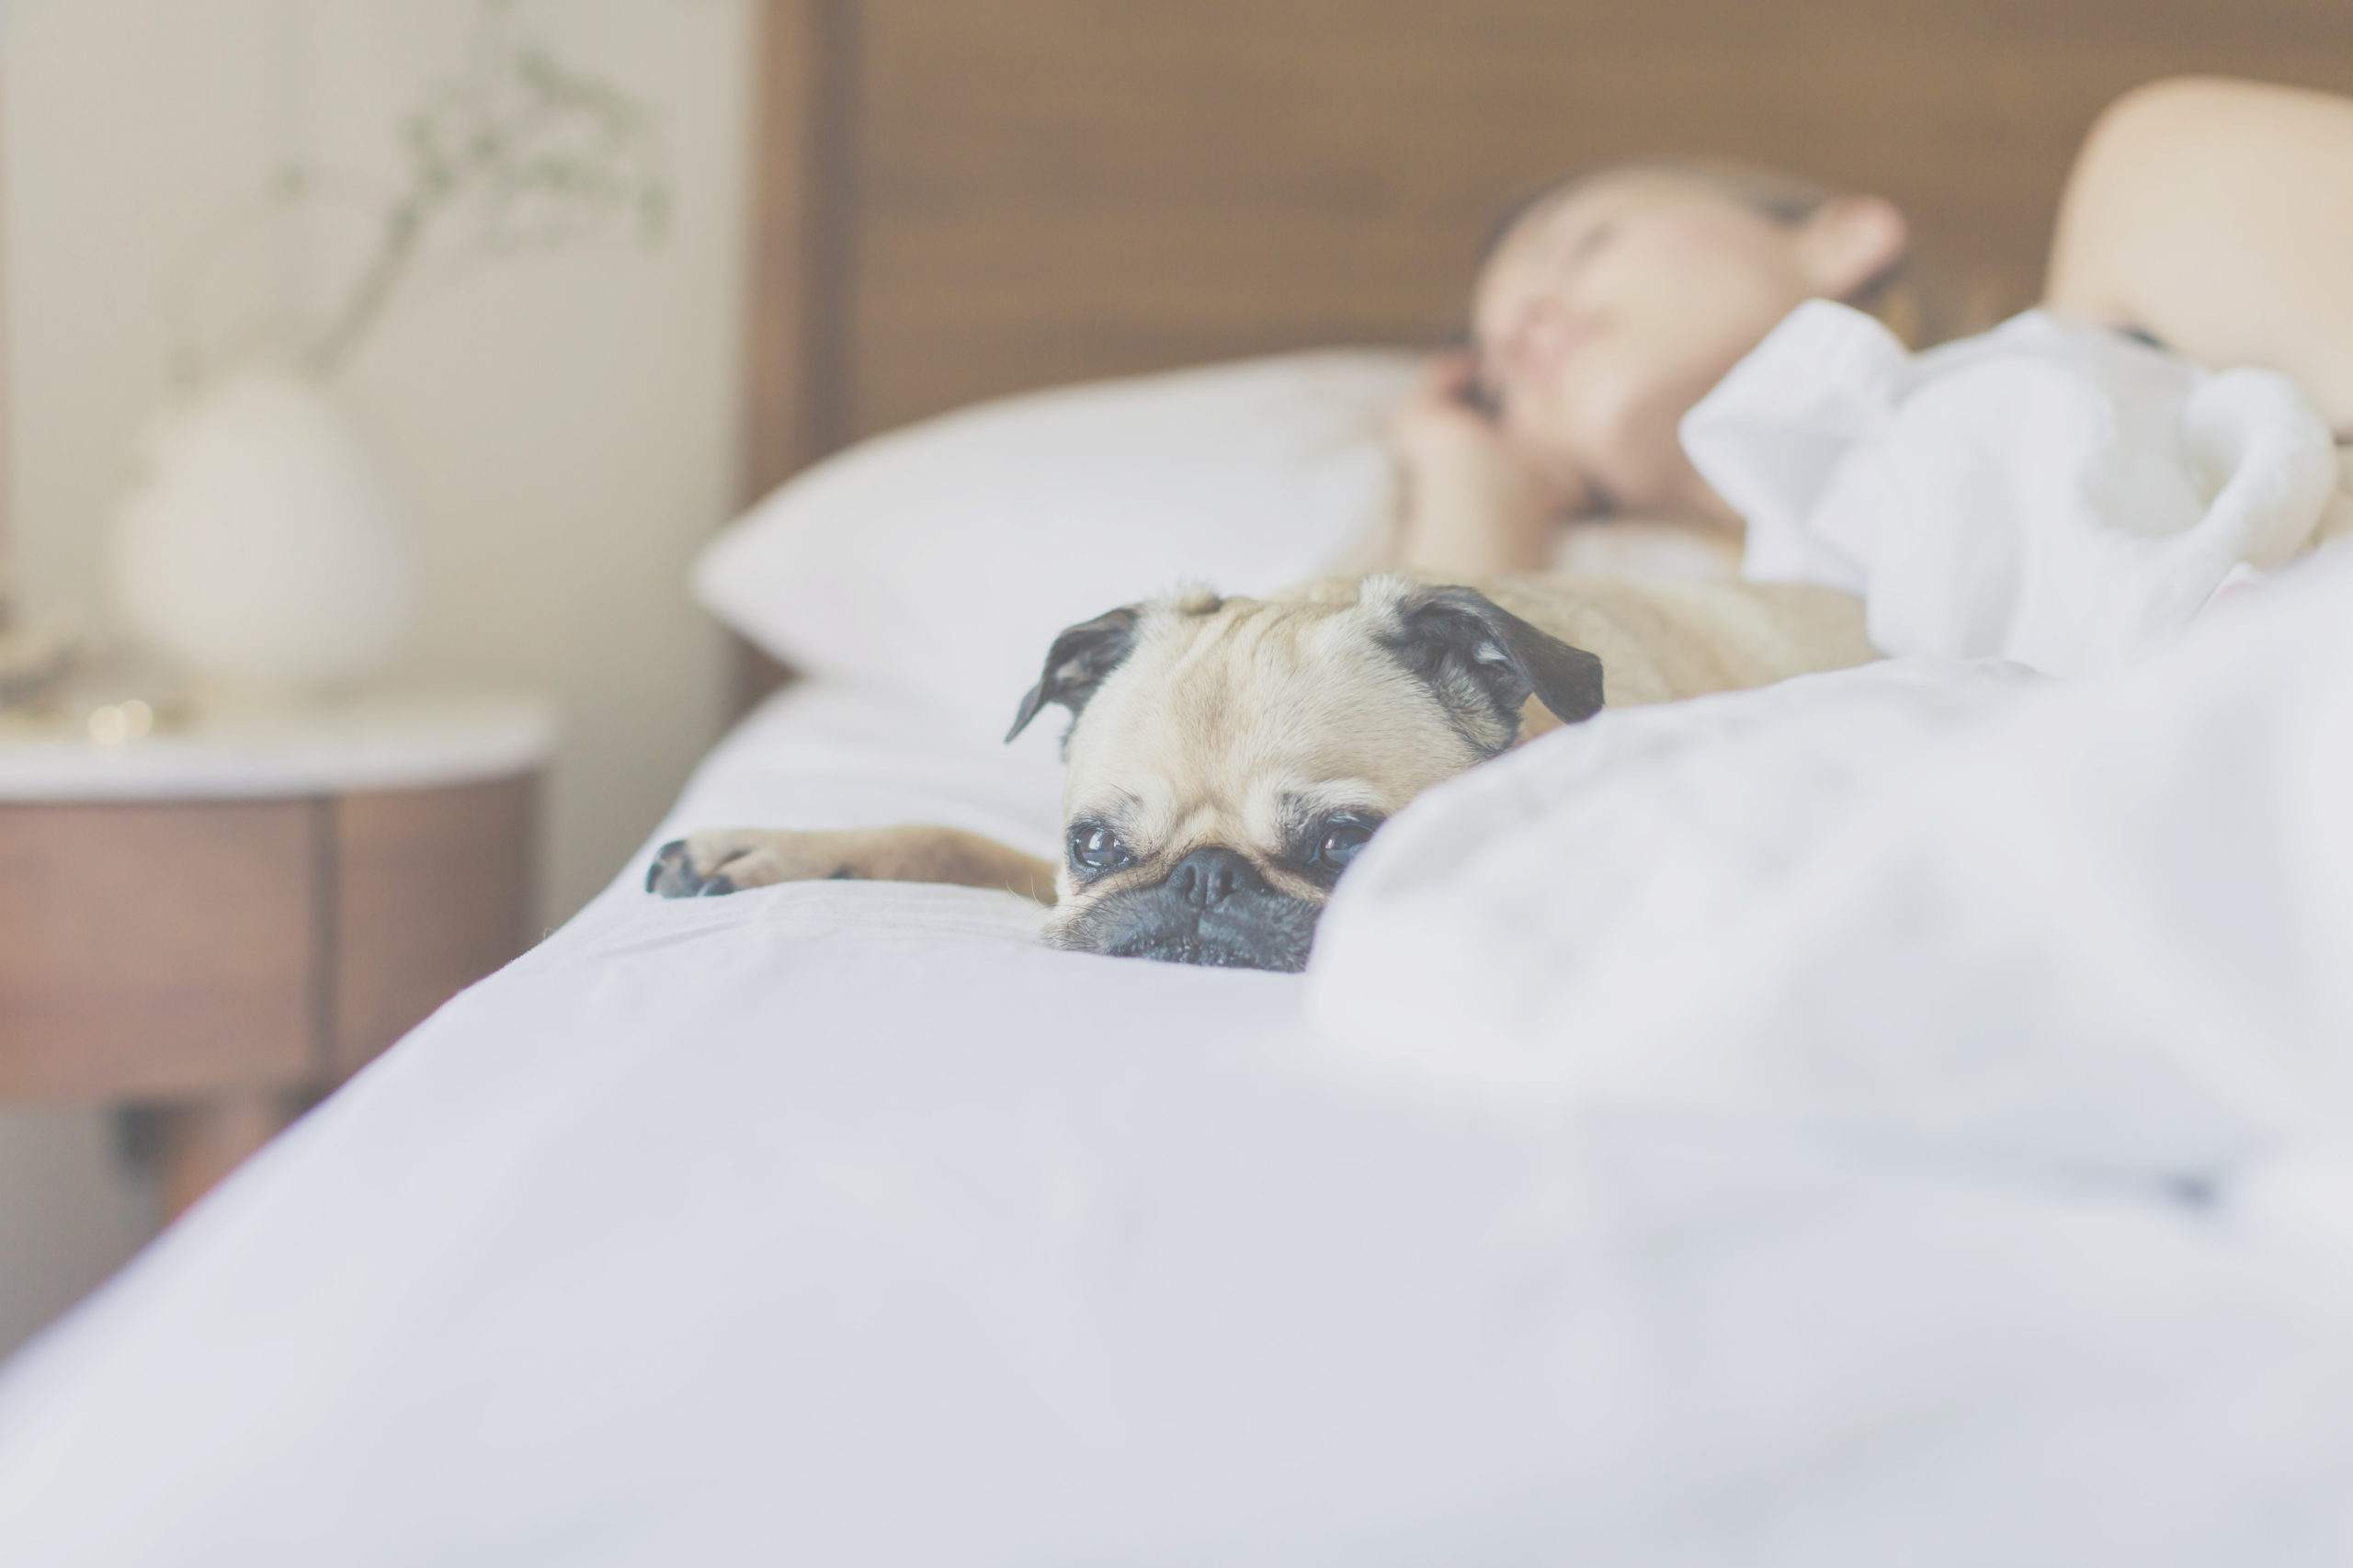 Pug lying on bed with owner asleep next to it